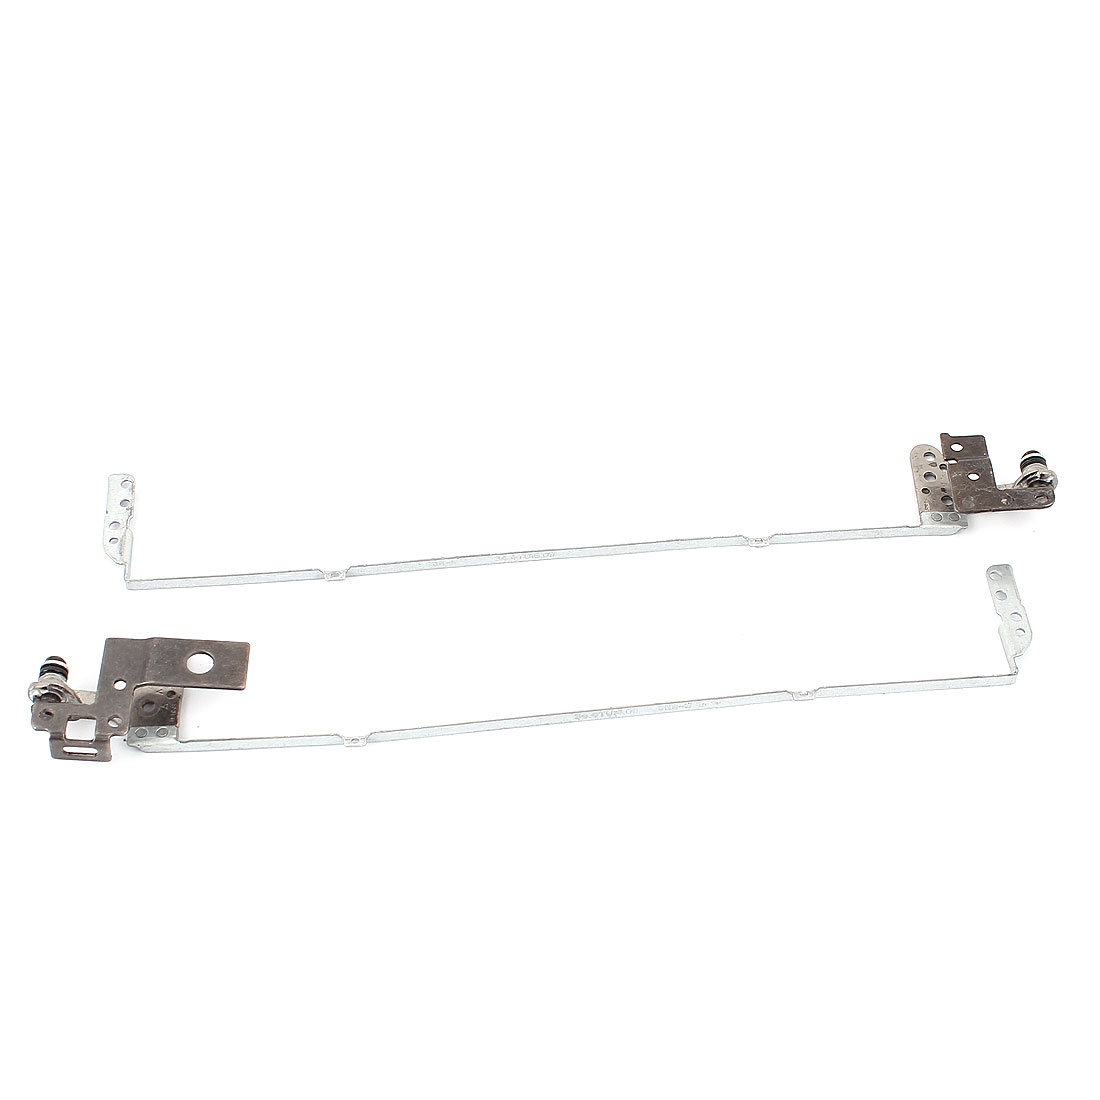 1 Pair Laptop Notebook Screen LCD Hinges Brackets Rails L+R for ACER V5-471